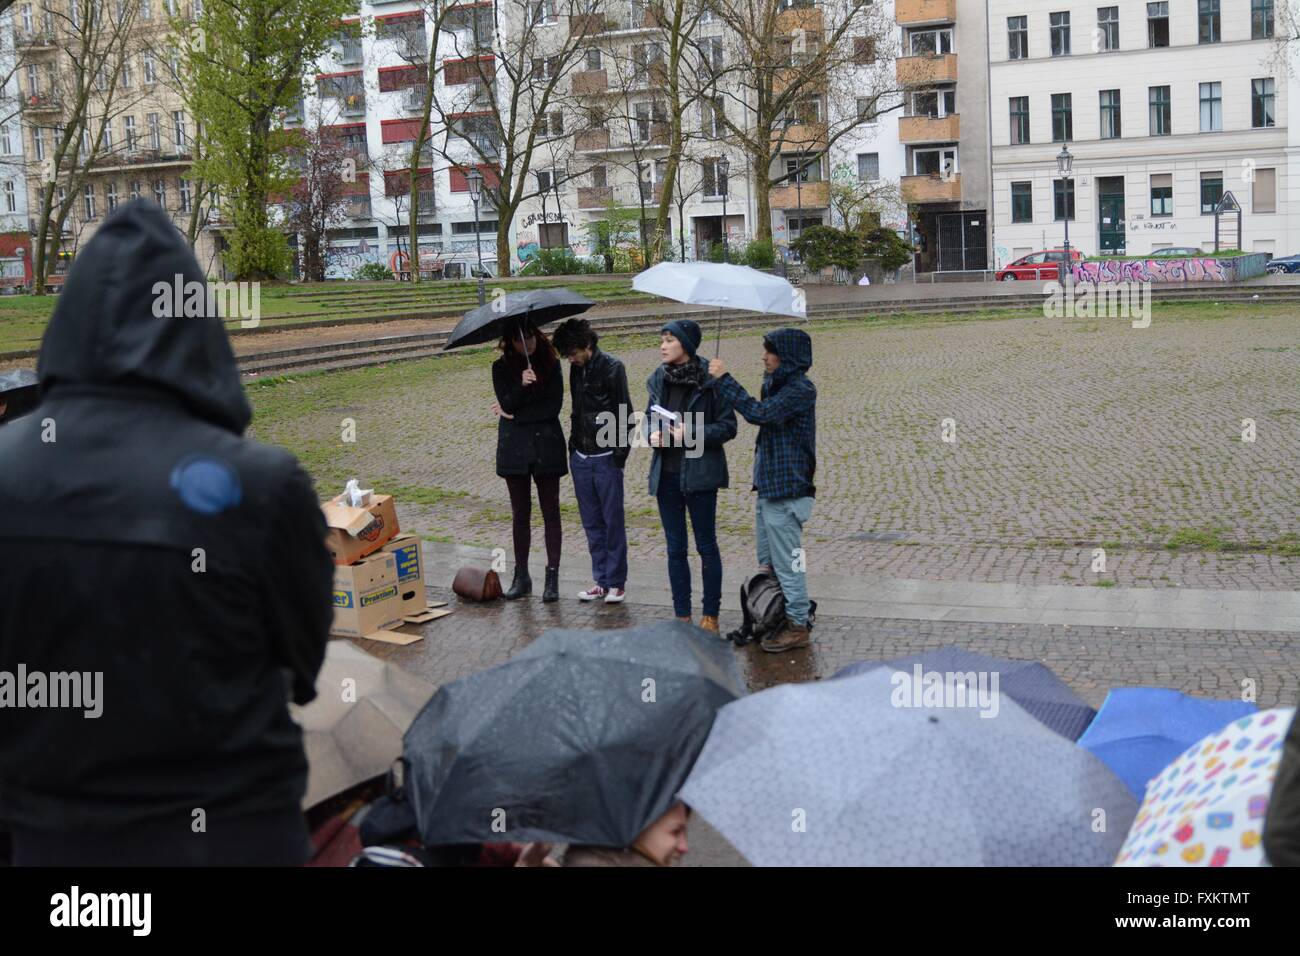 Berlin, Germany. 16th April 2016. Speakers and organisers address tghe crowd as the weather eases off. Credit:  - Stock Image